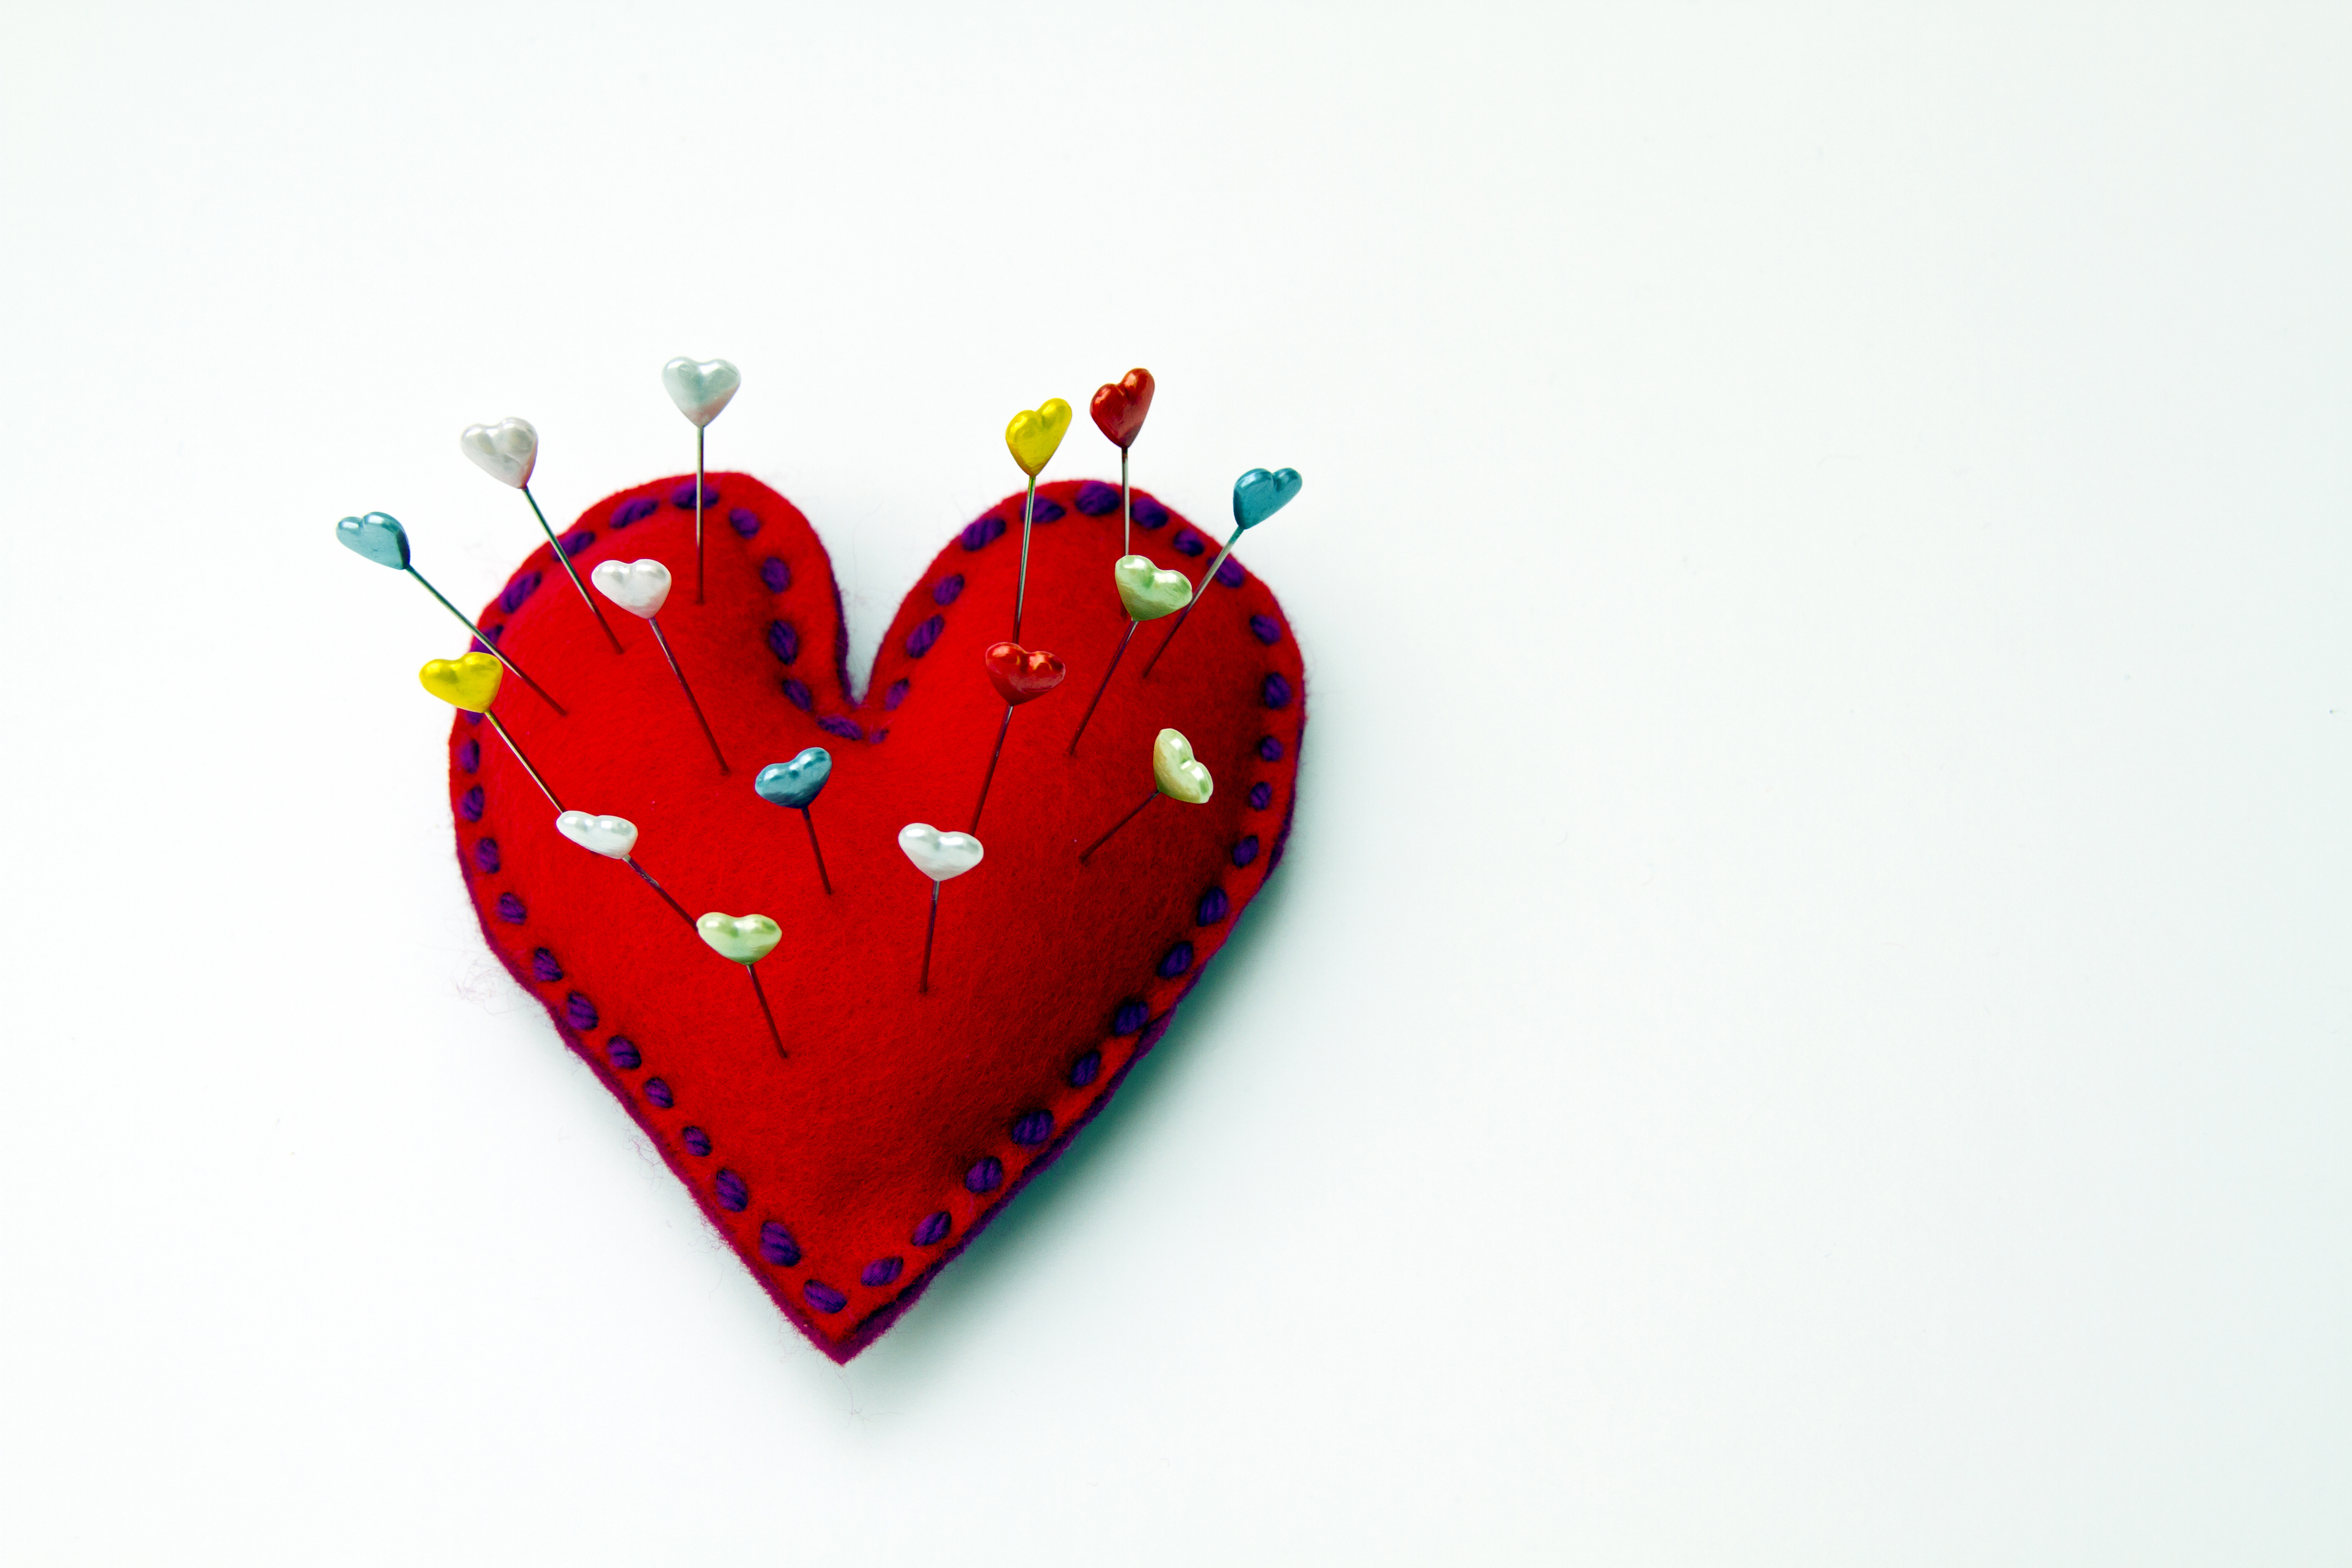 Heart shaped pin cushion with heart pins